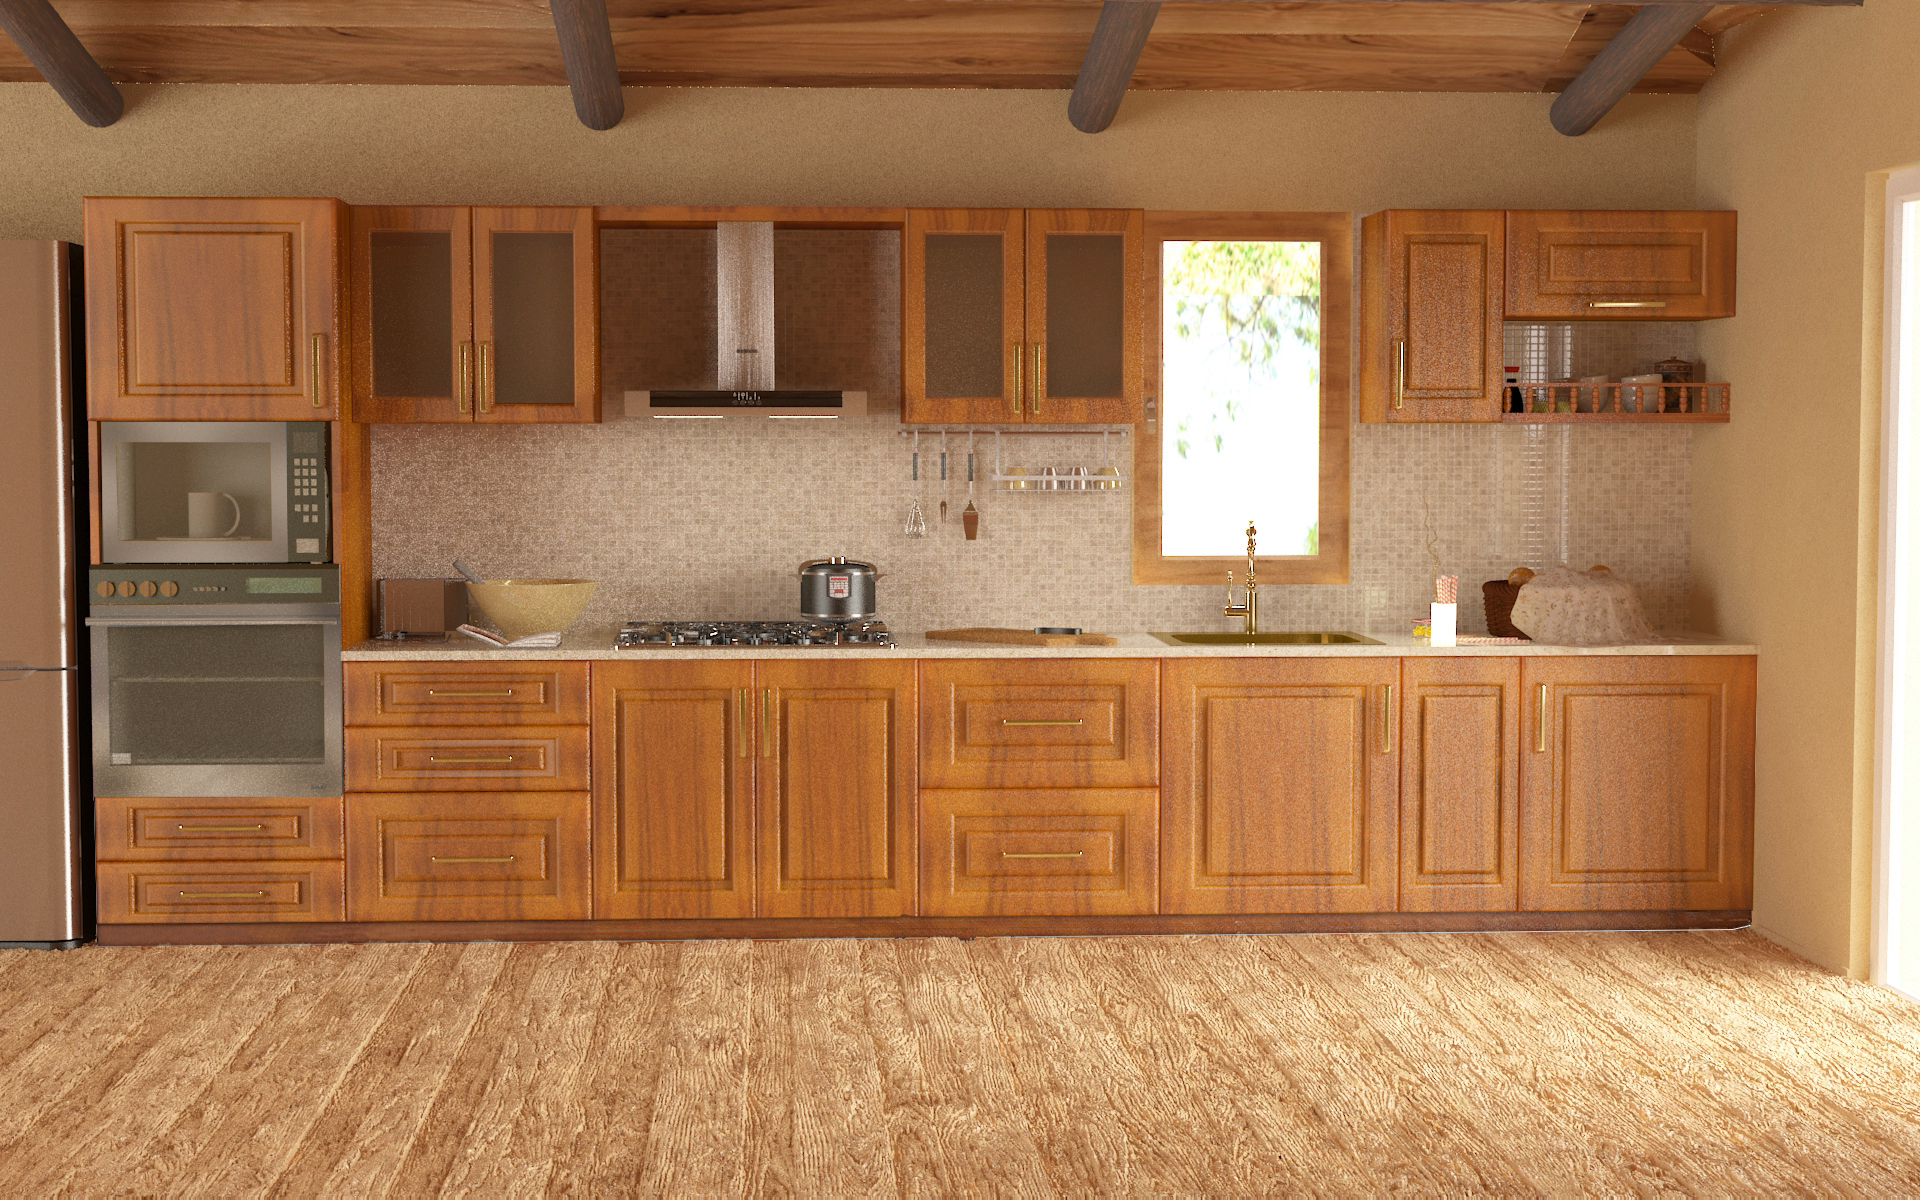 straight line kitchen layout images